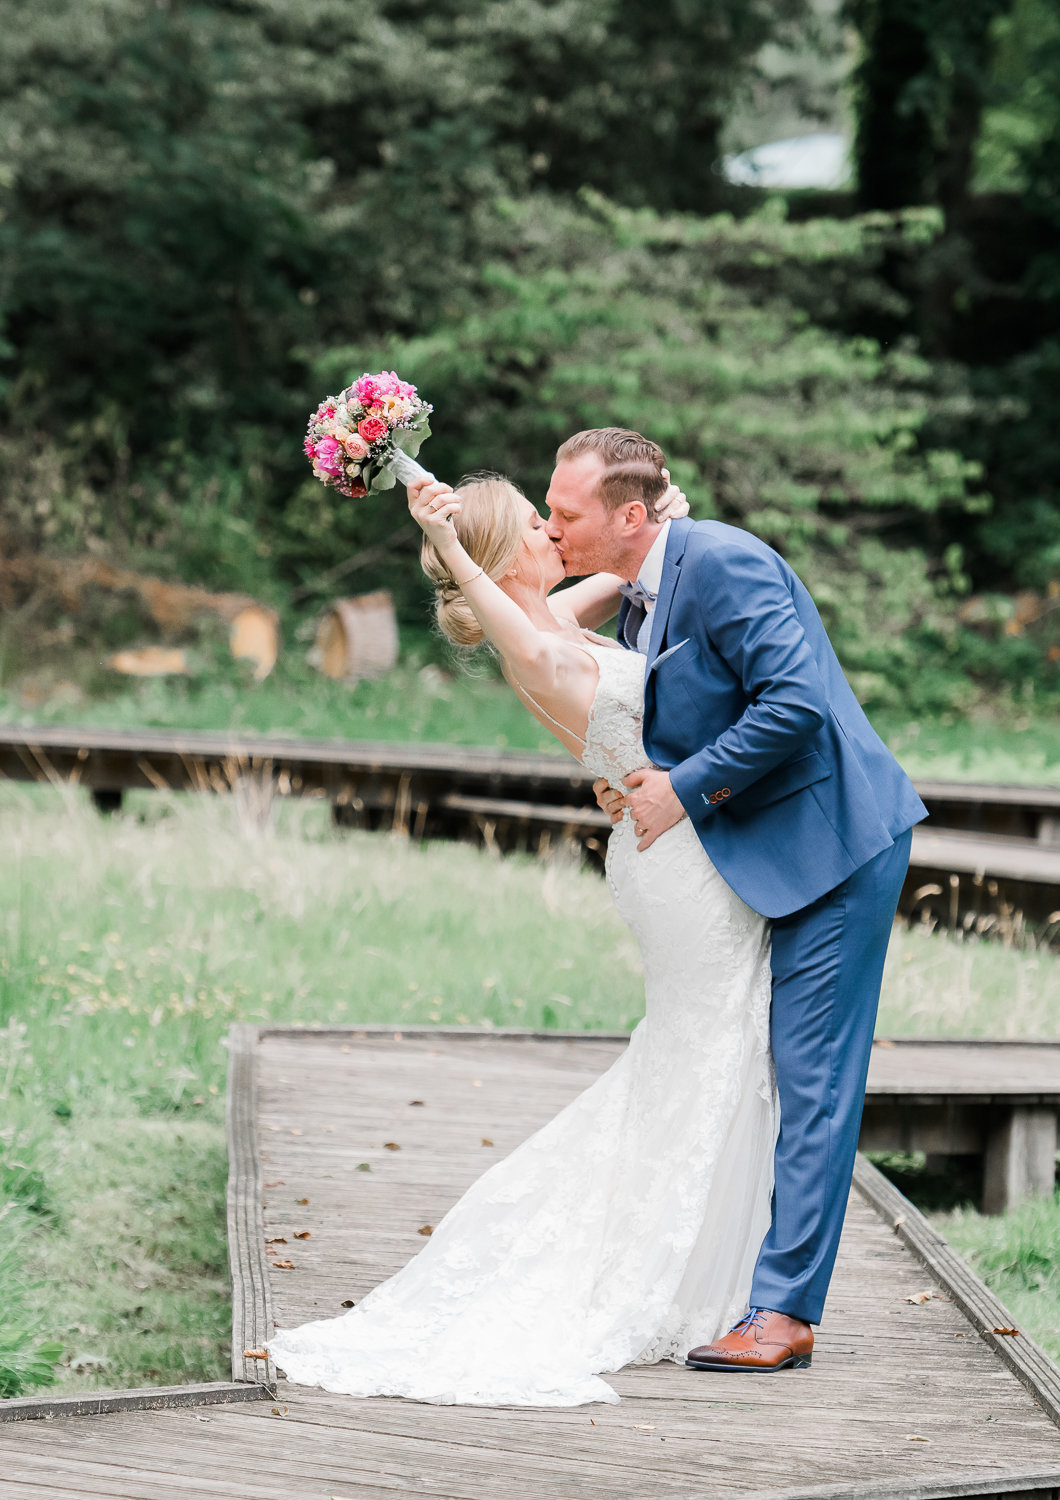 Kimberly_Duchateau_photography_2019_wedding-59